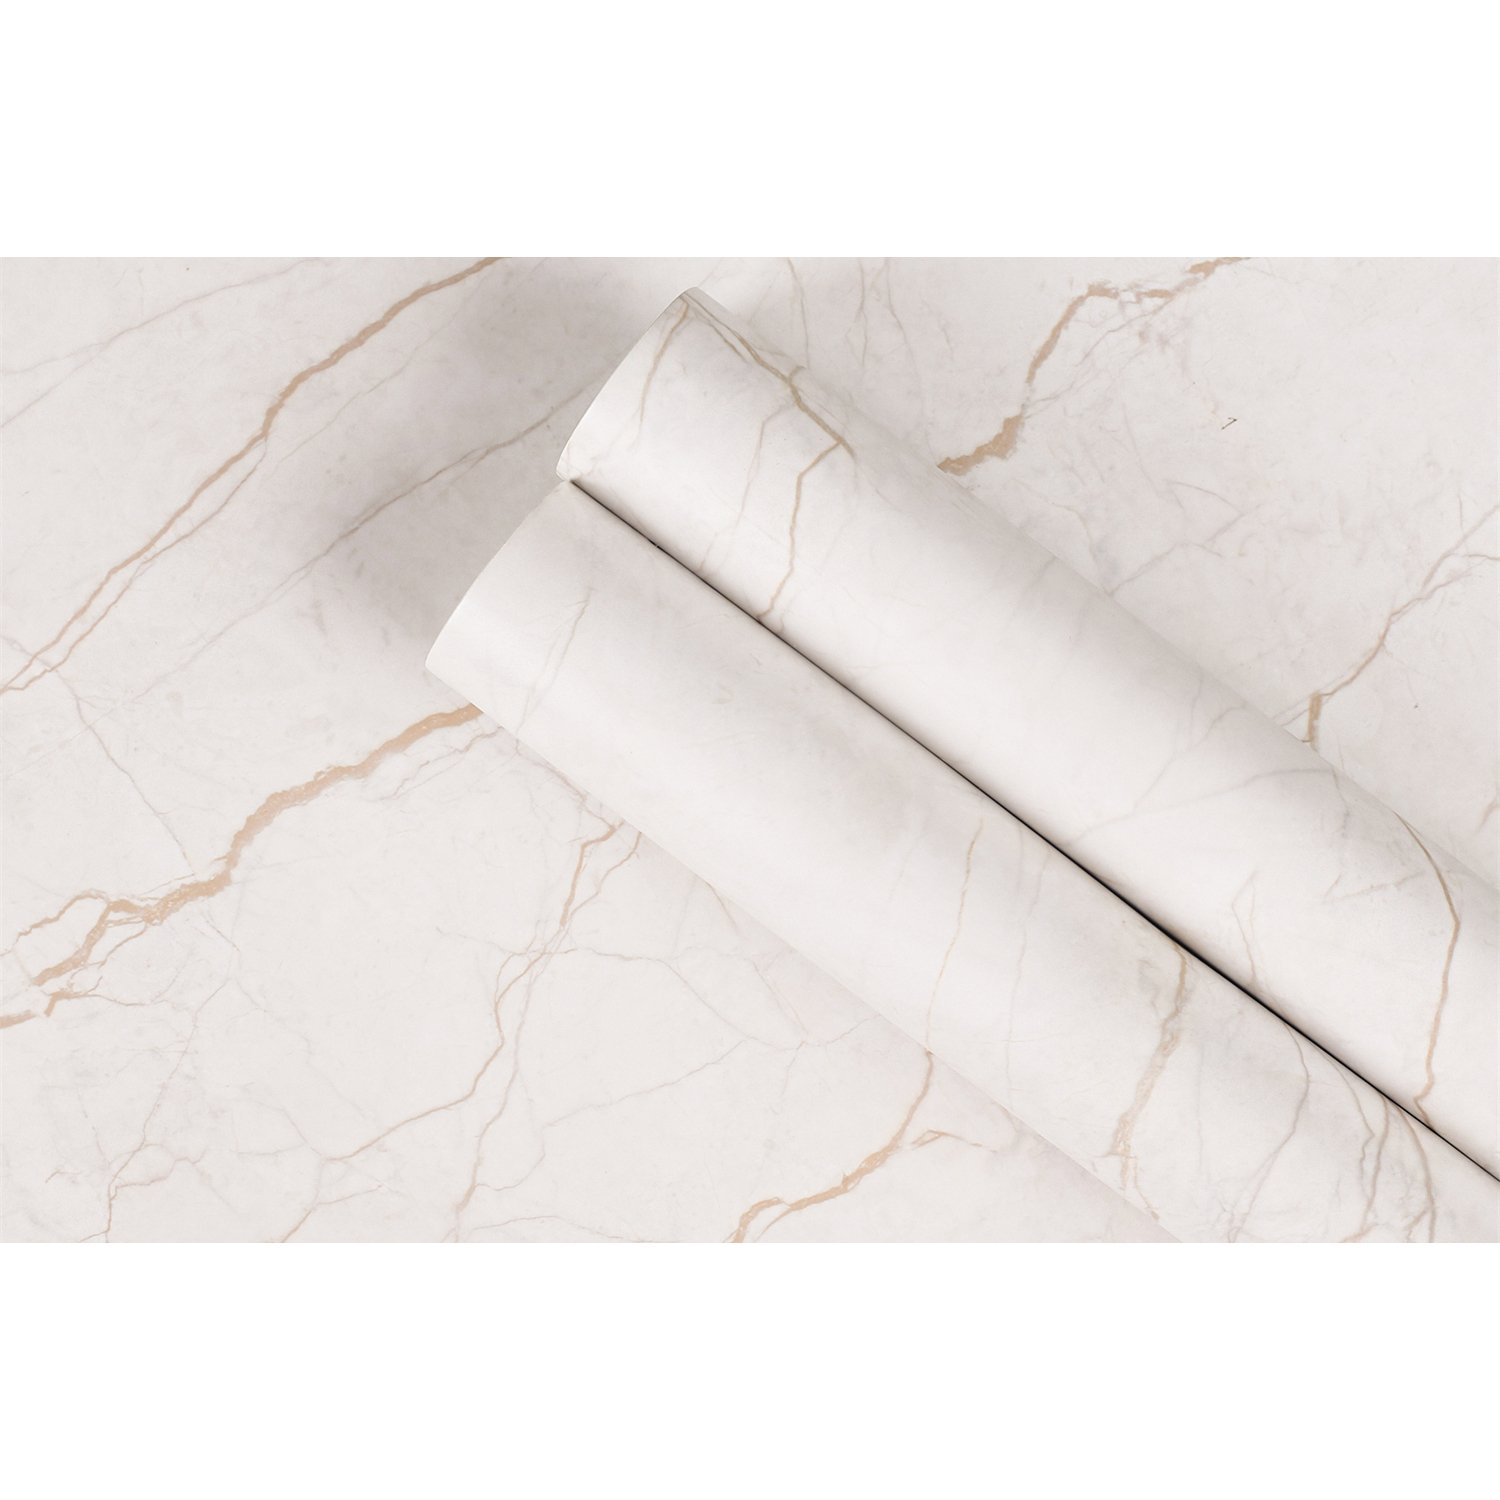 Marble Contact Paper 11.7'' x 78.7'', 2-Roll Pack - Peel and Stick Self Adhesive Contact Paper for Kitchen Countertops. Decorative Marble Paper for Home and Office. Matte Effect, Removable, Waterproof